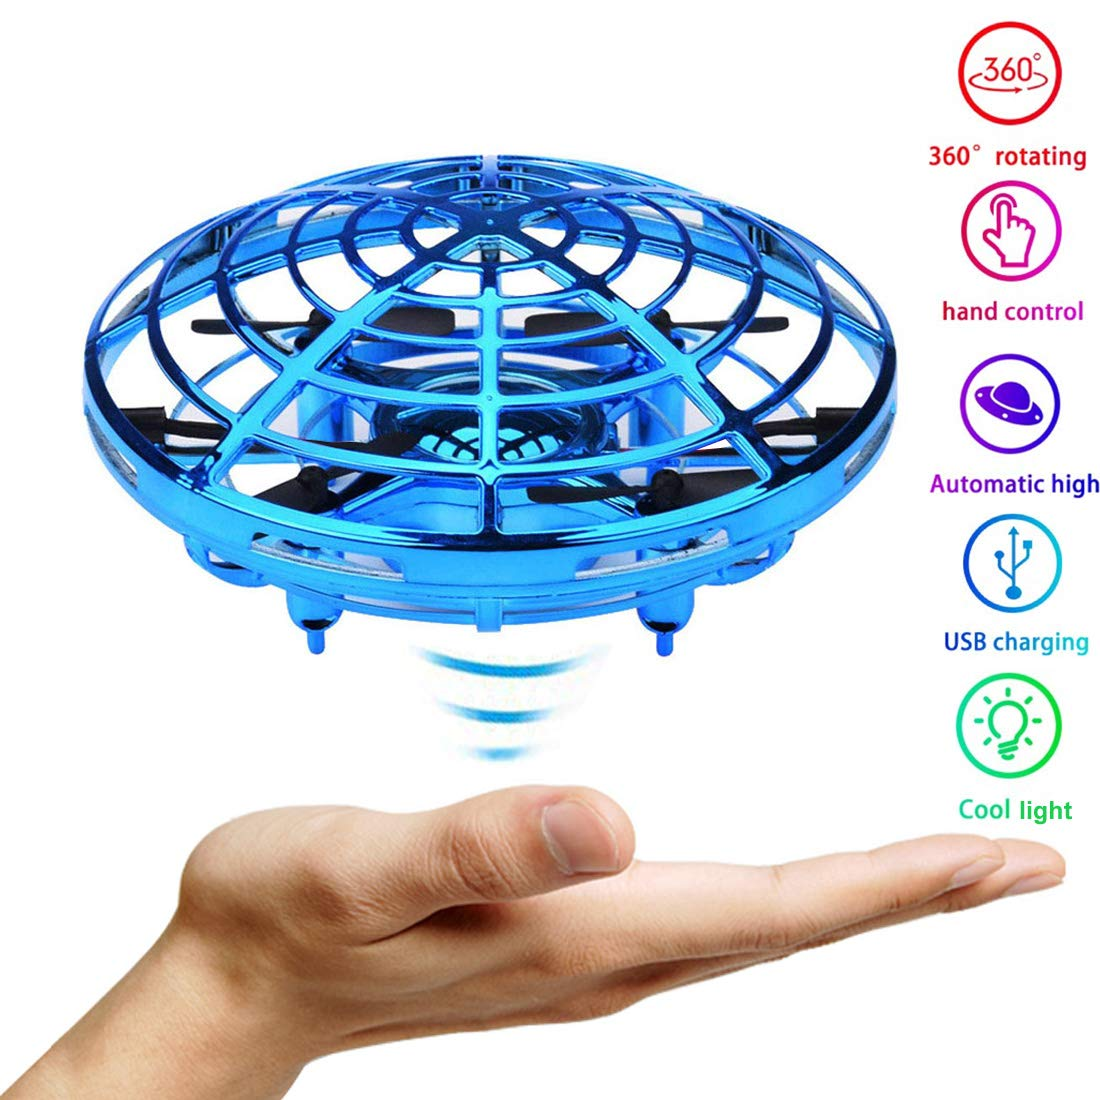 JTORD UFO Flying Toys for Kids Boys Hand-Controlled Flying Ball Interactive Infrared Induction Helicopter Ball 360° Rotating Shinning LED Lights Toys Gifts for Boys Girls Kids(Blue)